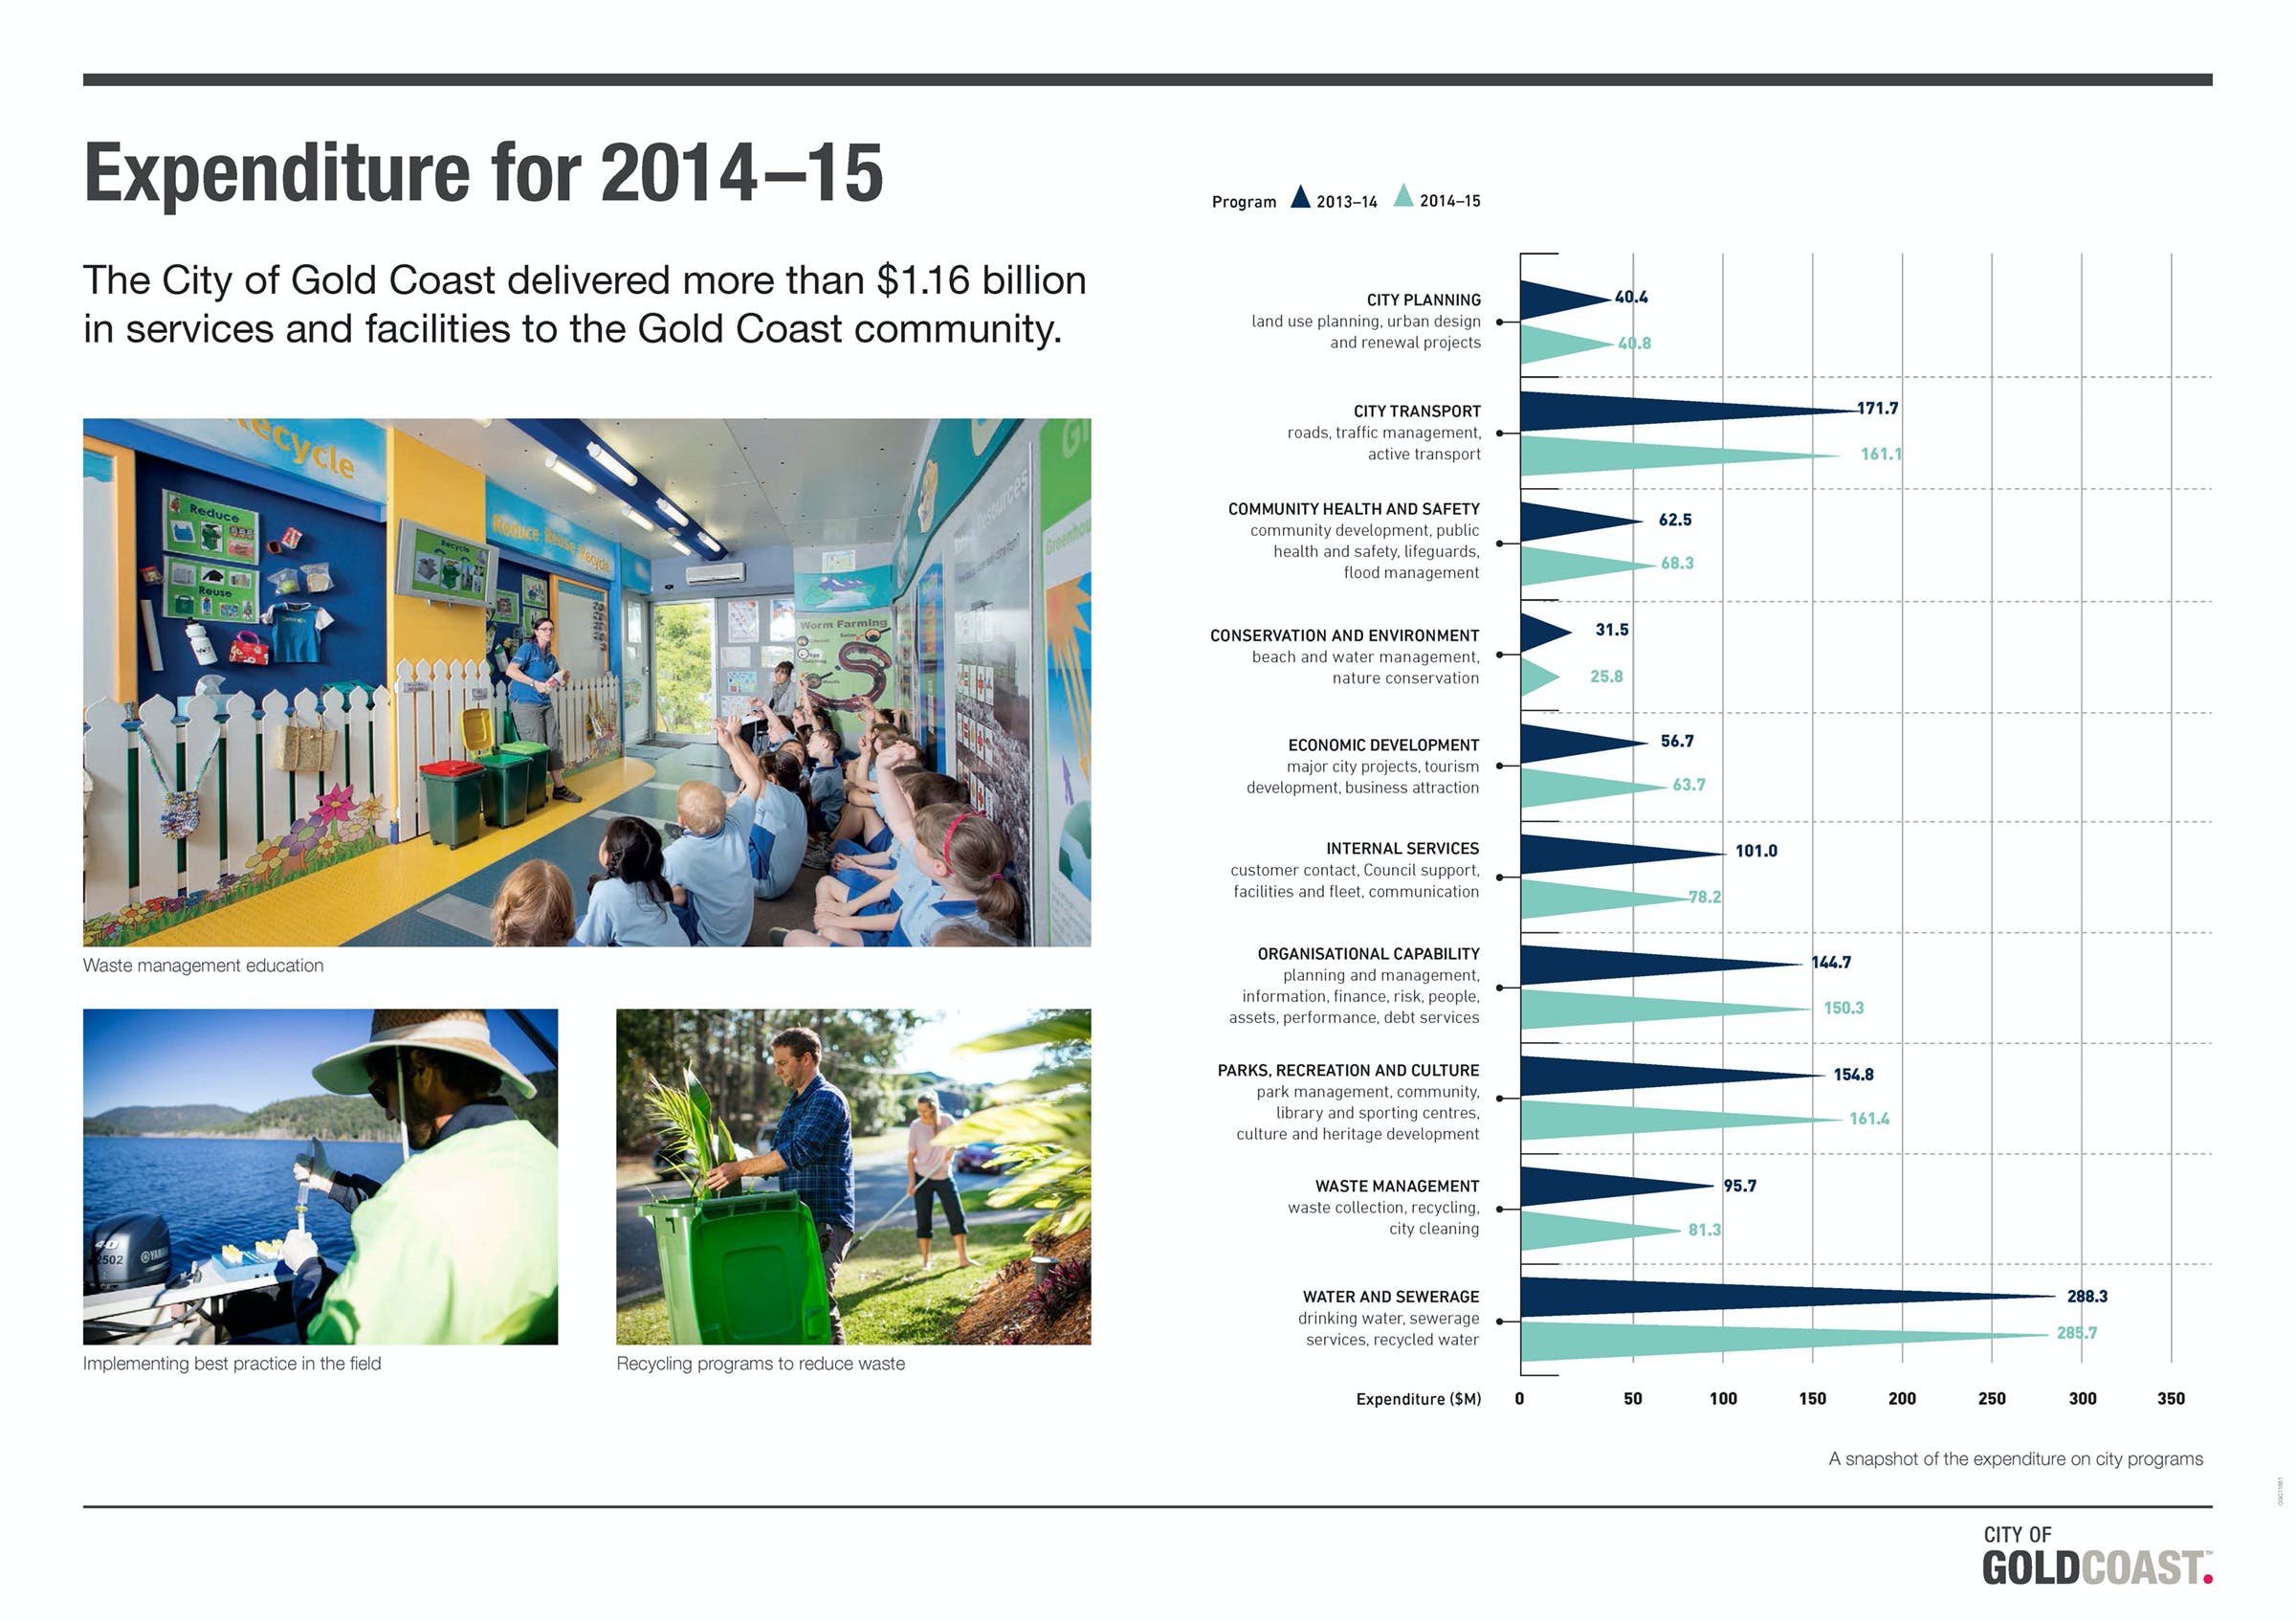 Expenditure for 2014-15